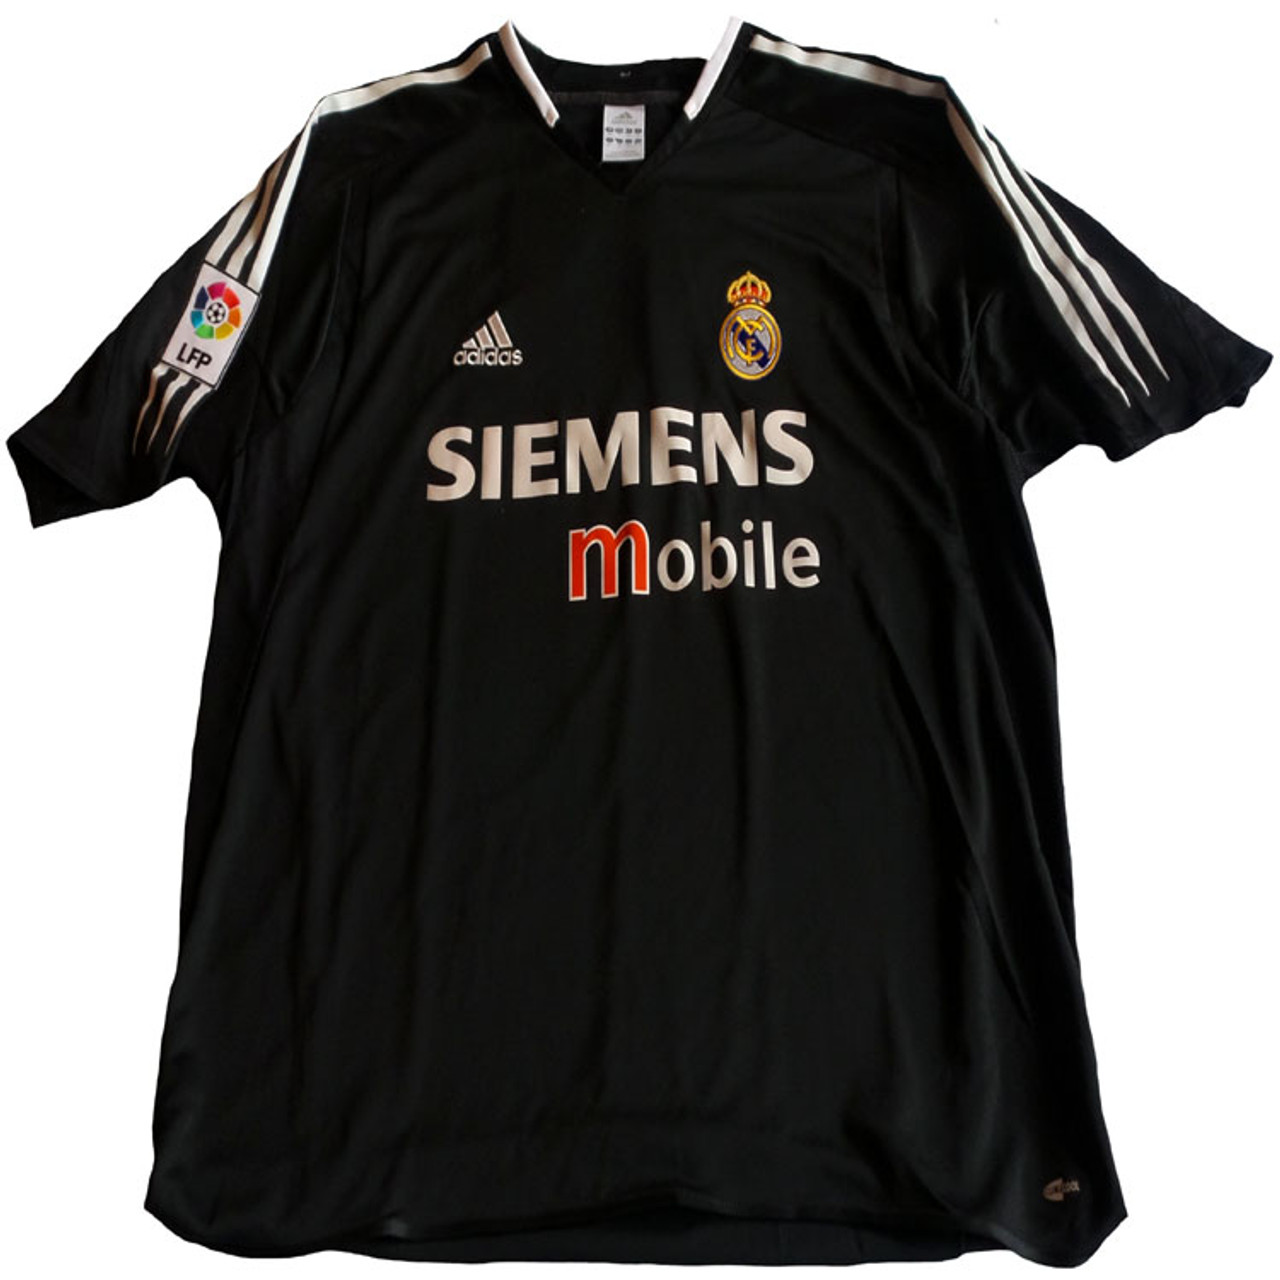 reputable site 2e0d6 860bf ADIDAS REAL MADRID 2005 AWAY JERSEY BLACK